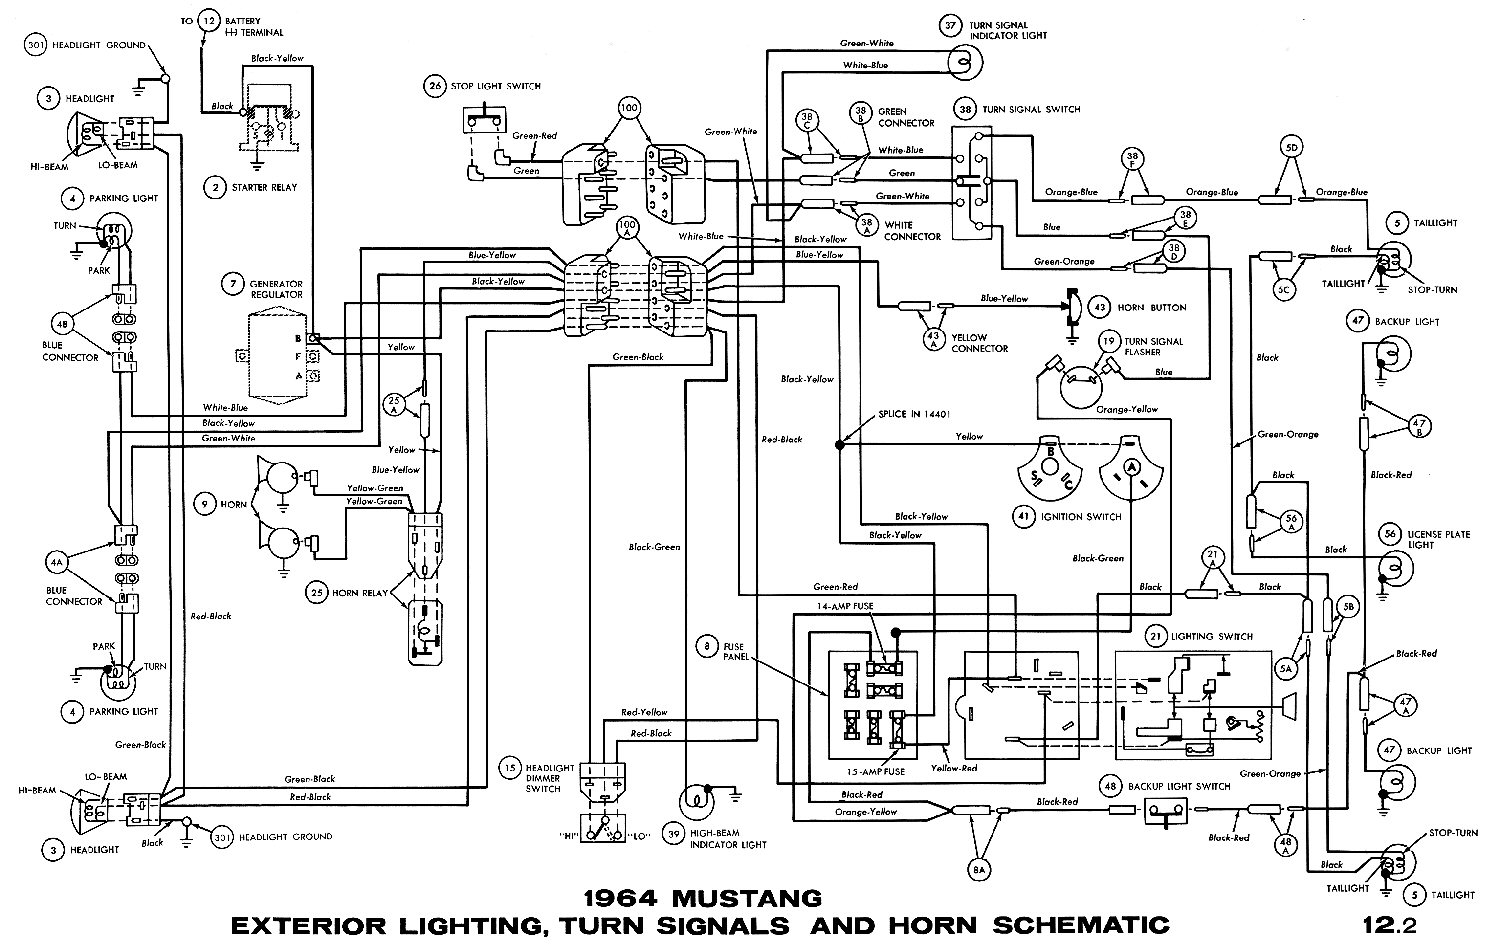 64 Mustang Wiring Diagram Schemes 1969 Ford Galaxie 1964 Diagrams Average Joe Restoration Alternator